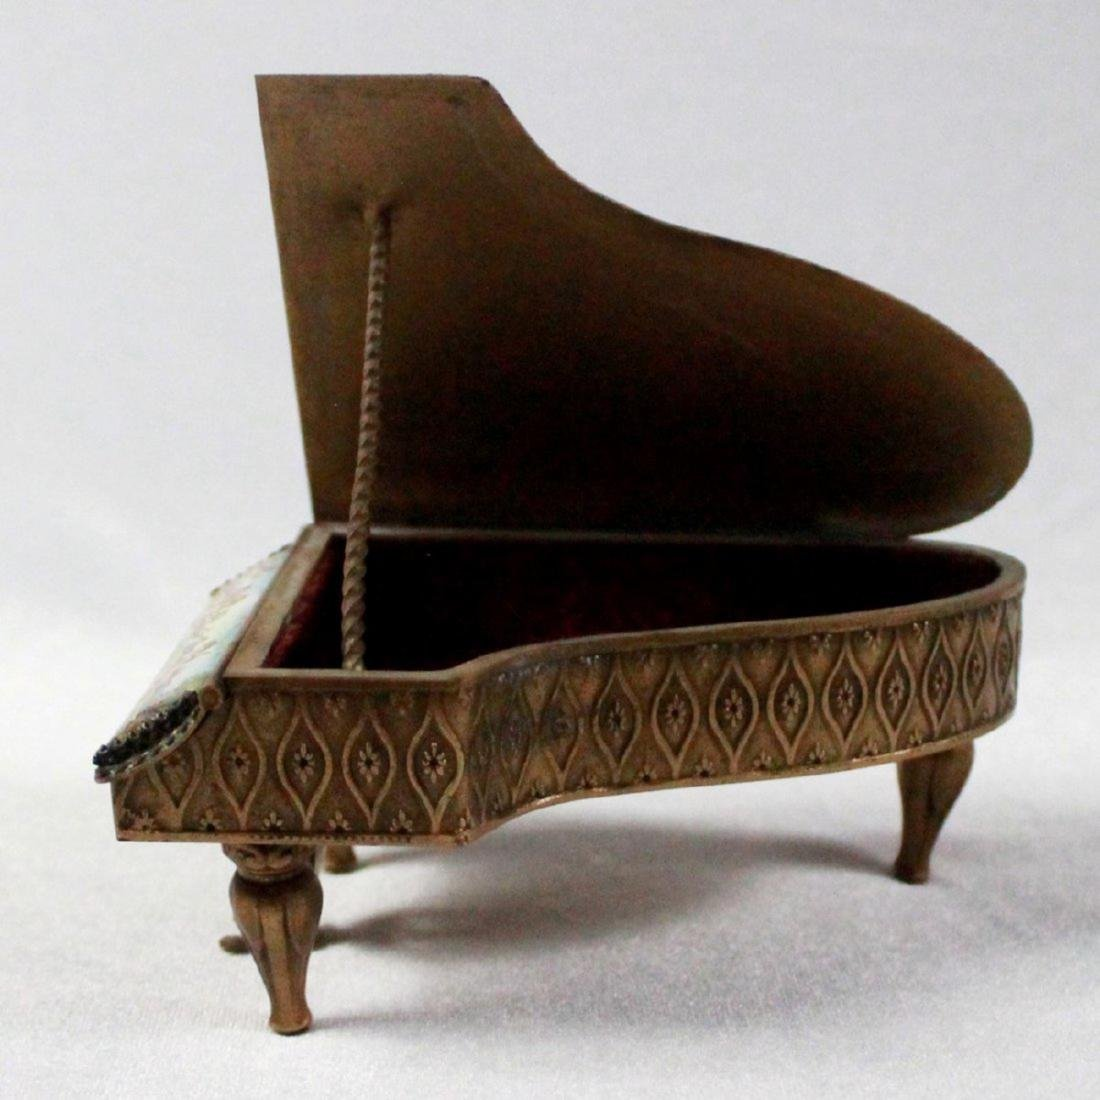 19TH C VIENNESE ENAMEL MINIATURE PIANO - 6